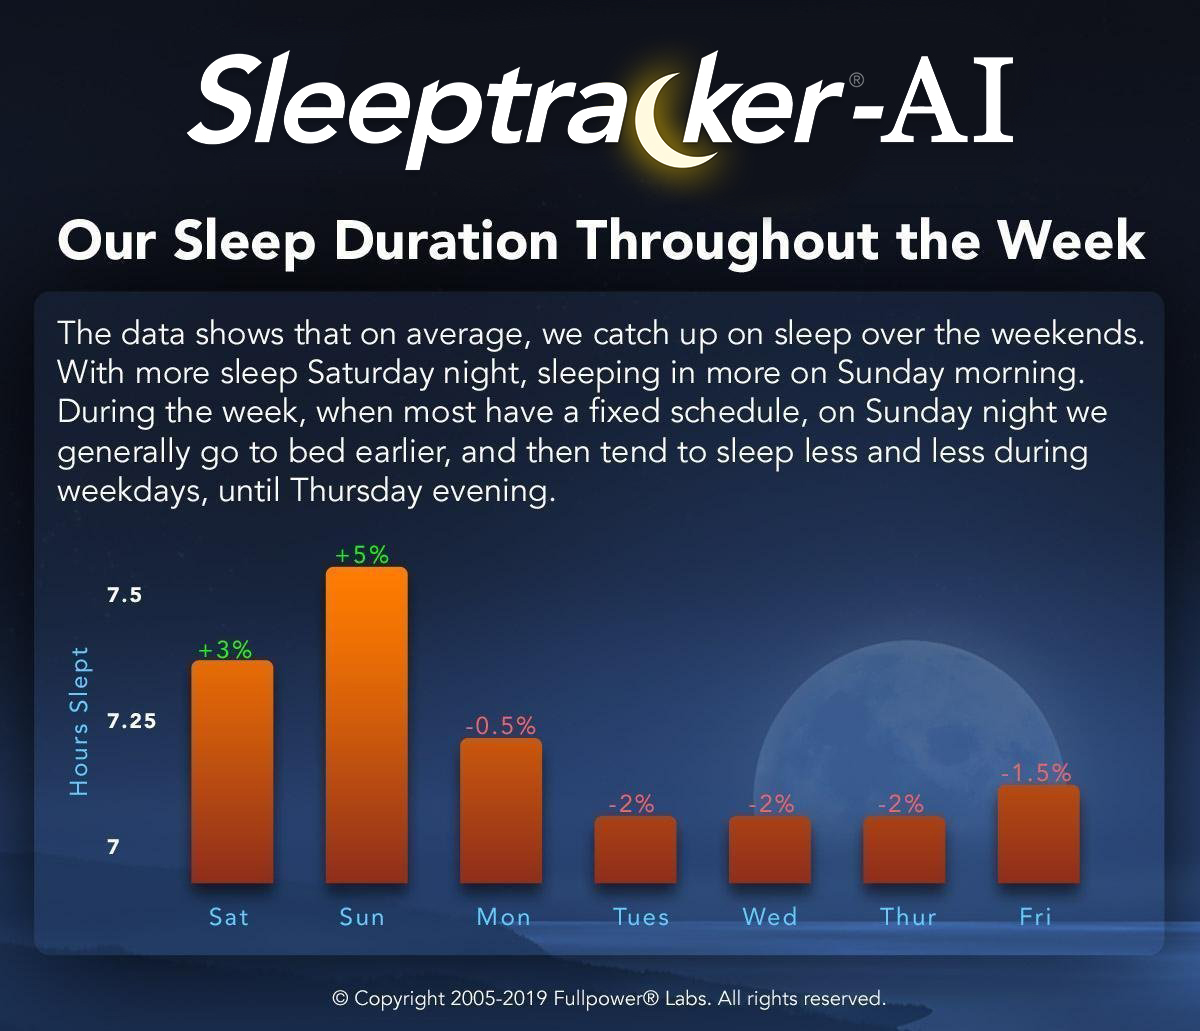 Our Sleep Durations Throughout the Week